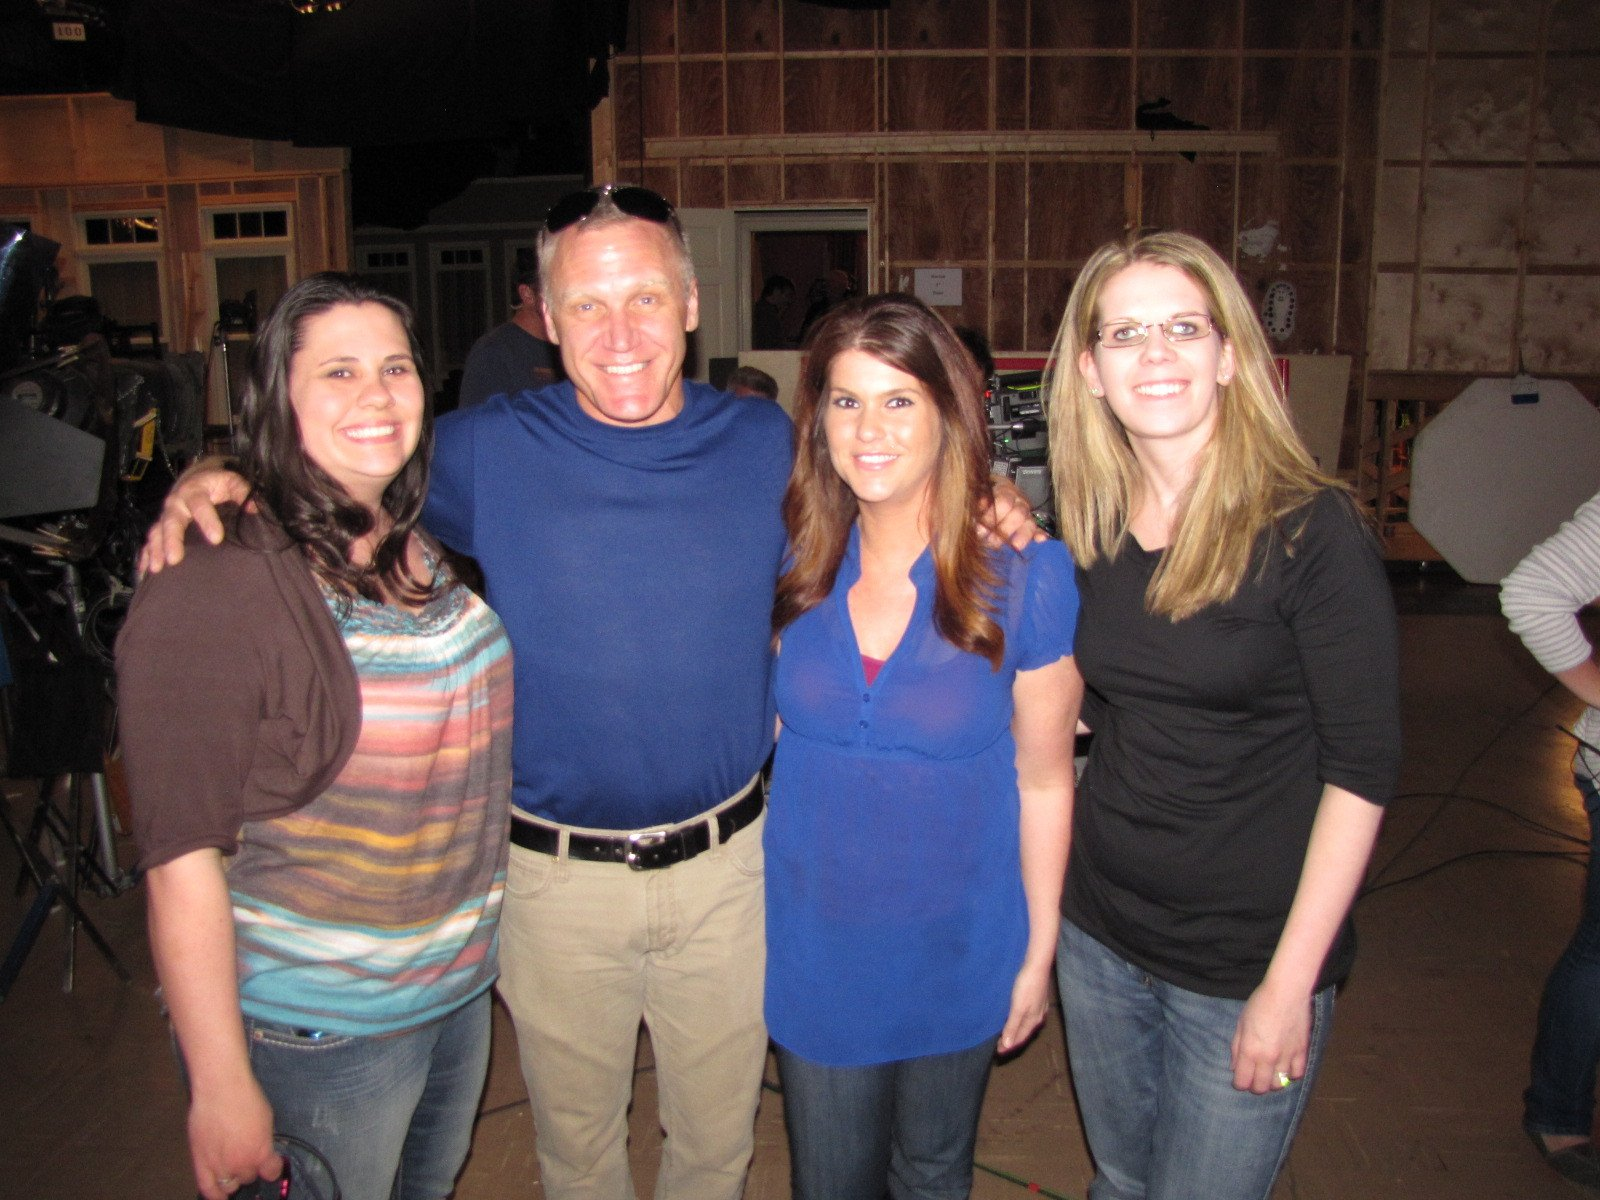 """Andrea Curely, Samantha Koktan and Tammy Estes pose with Terry Serpico during a visit to """"Army Wives"""" set in Charleston, S.C., on  February 24, 2012. 